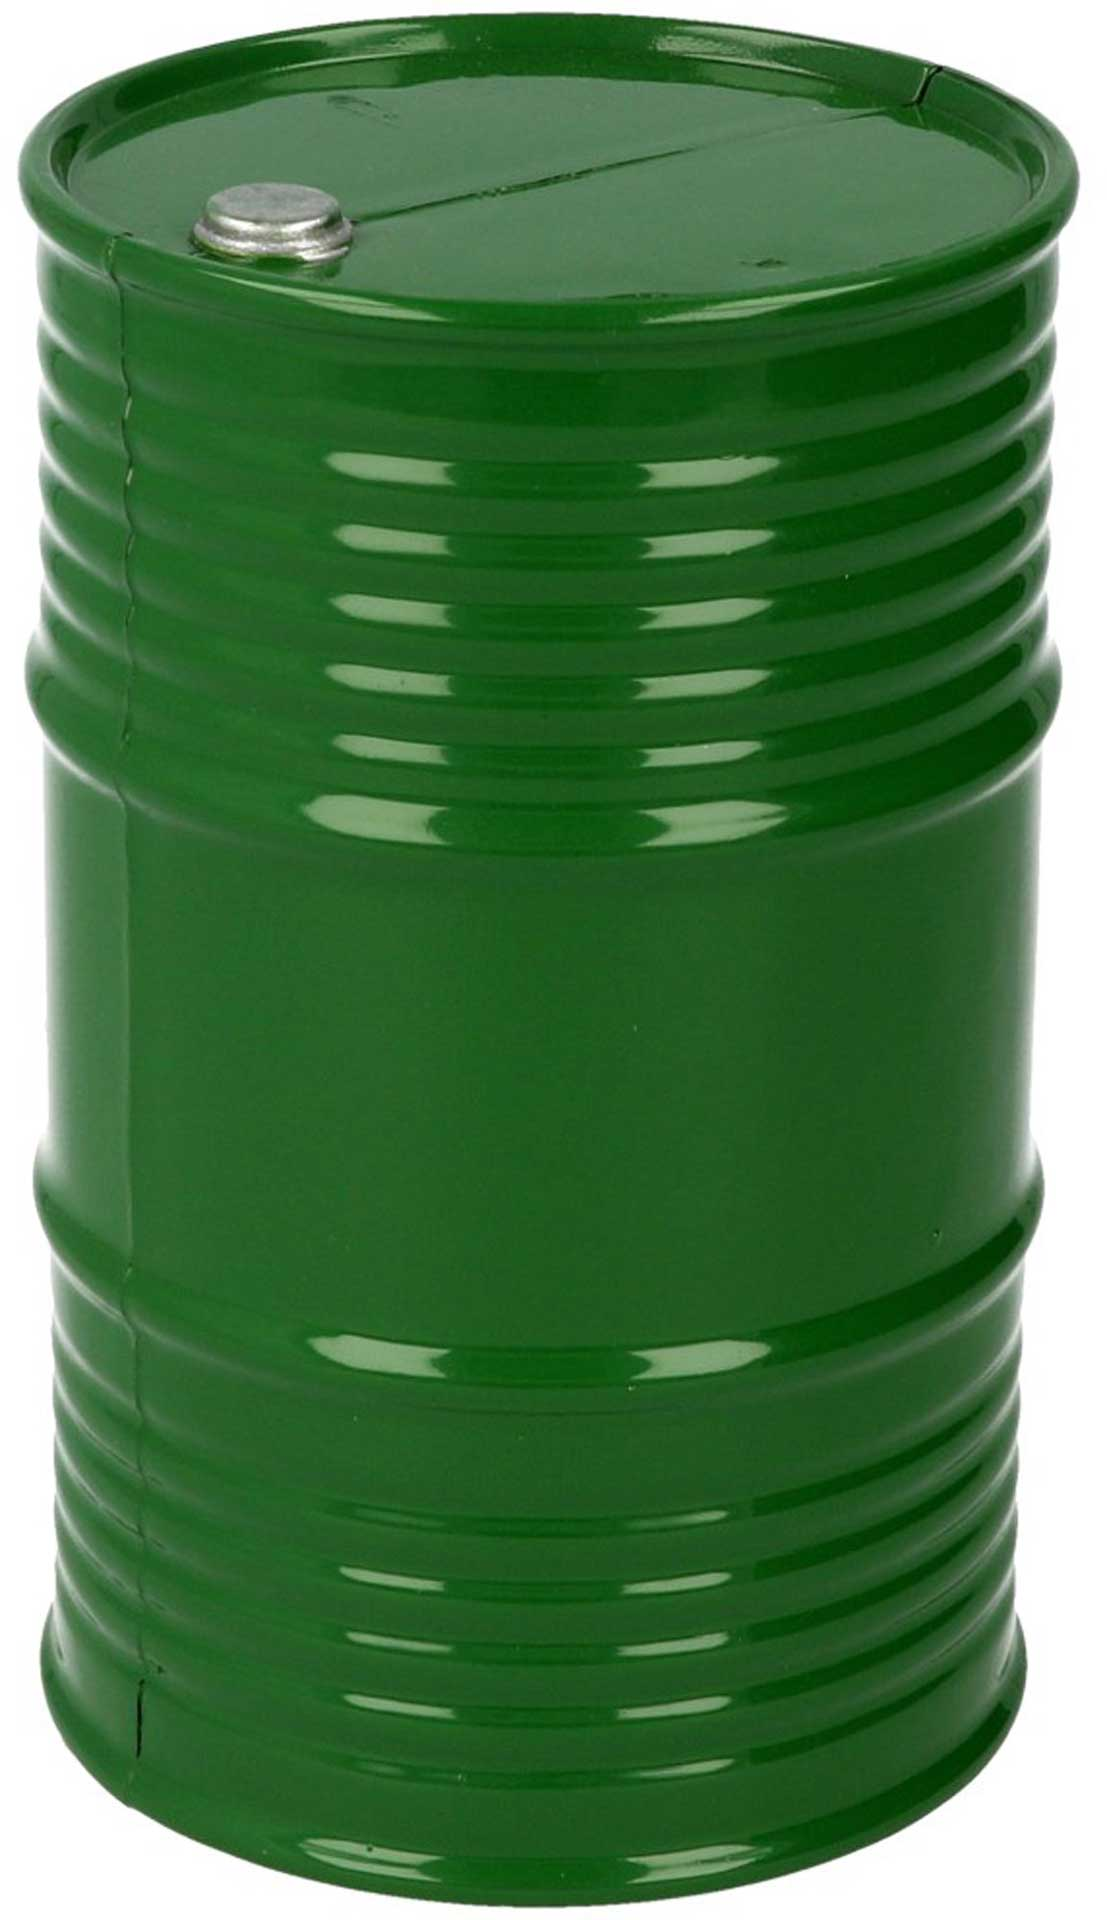 ROBITRONIC Oil Barrel Plastic Green 95x60mm